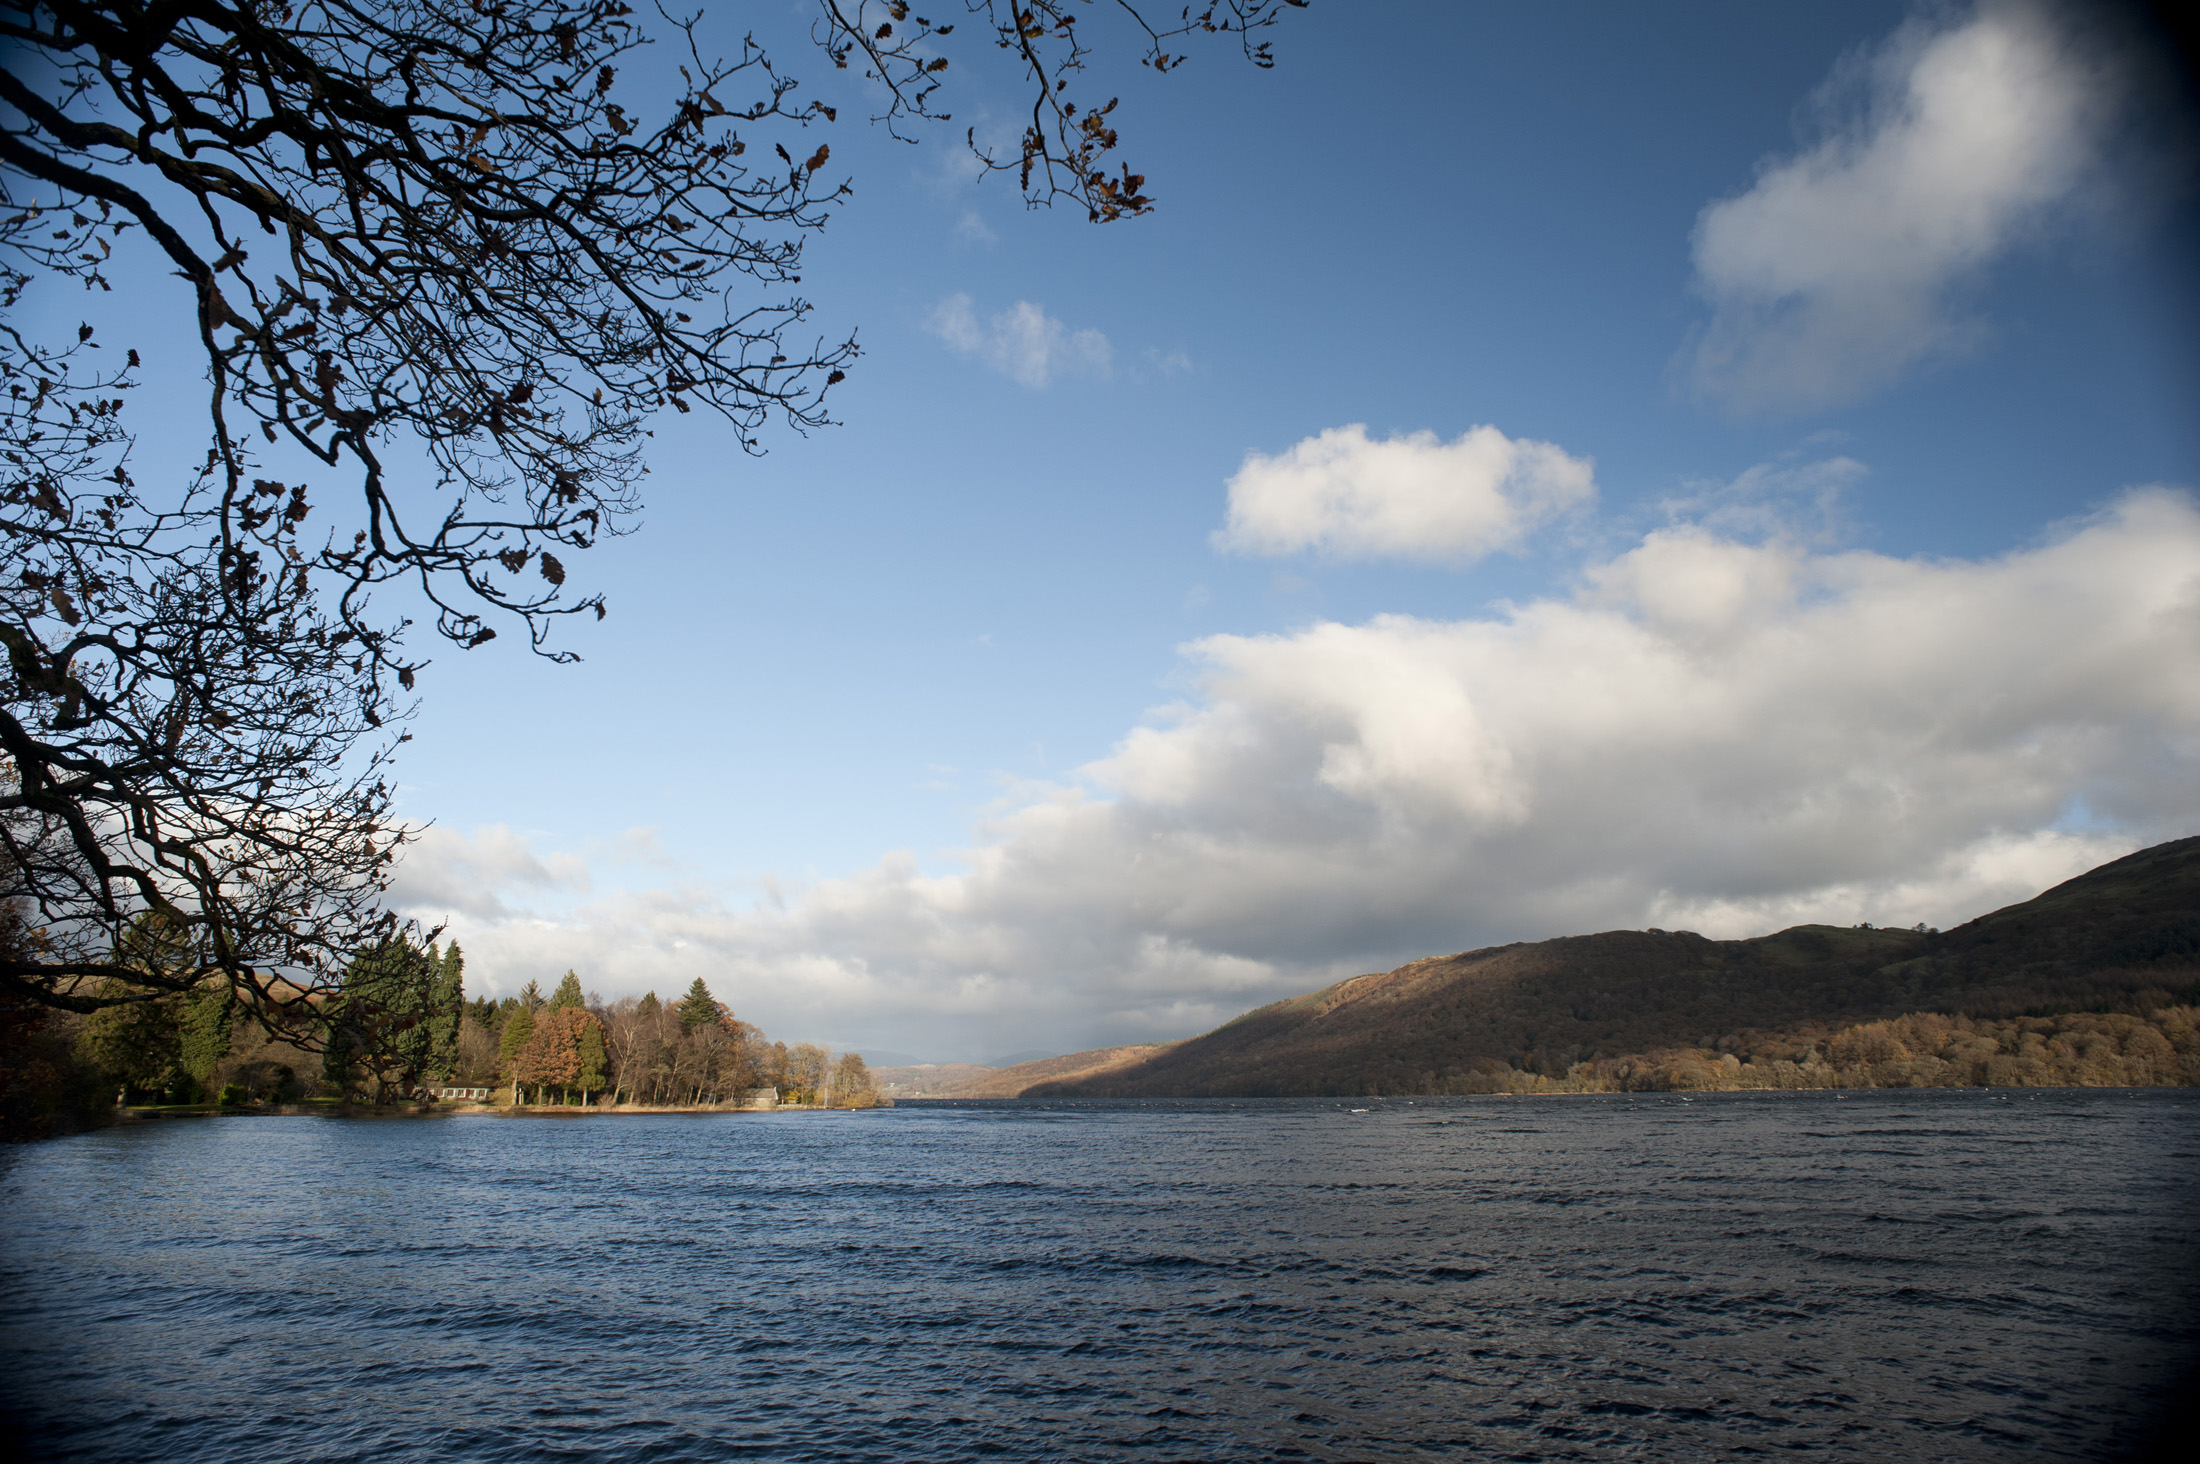 Scenic view of Consiton Water in Cumbria, the third largest lake in the English Lake District